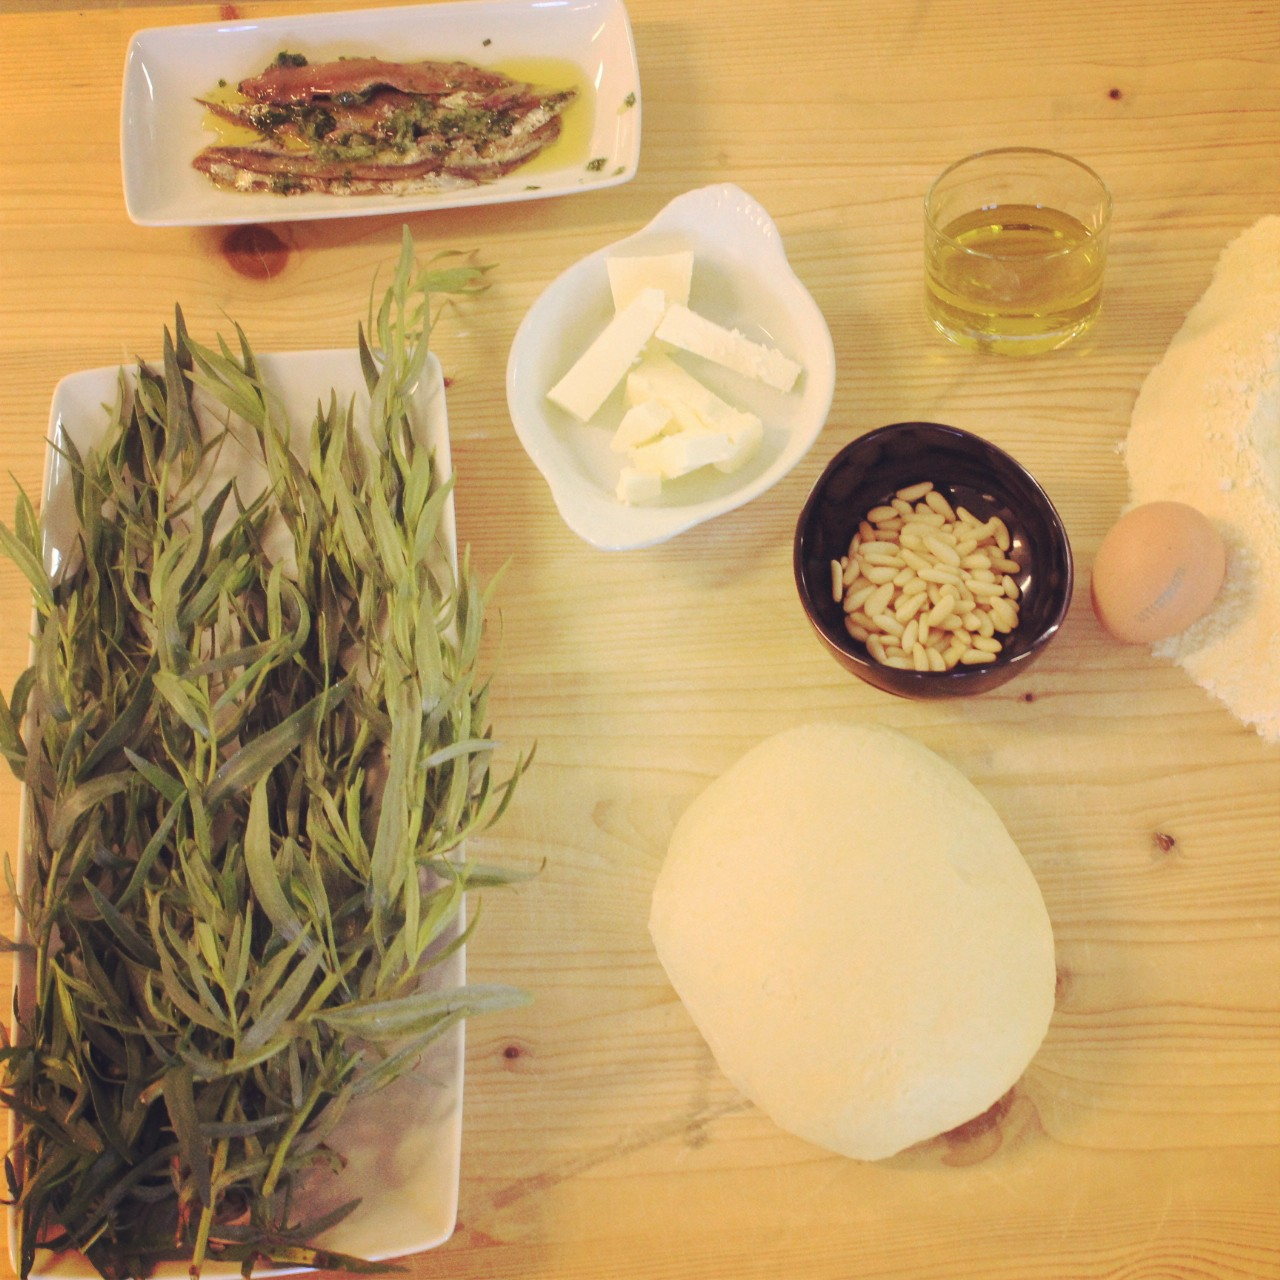 Ingredients for Pici with tarragon pesto, bread crumbs and anchovies